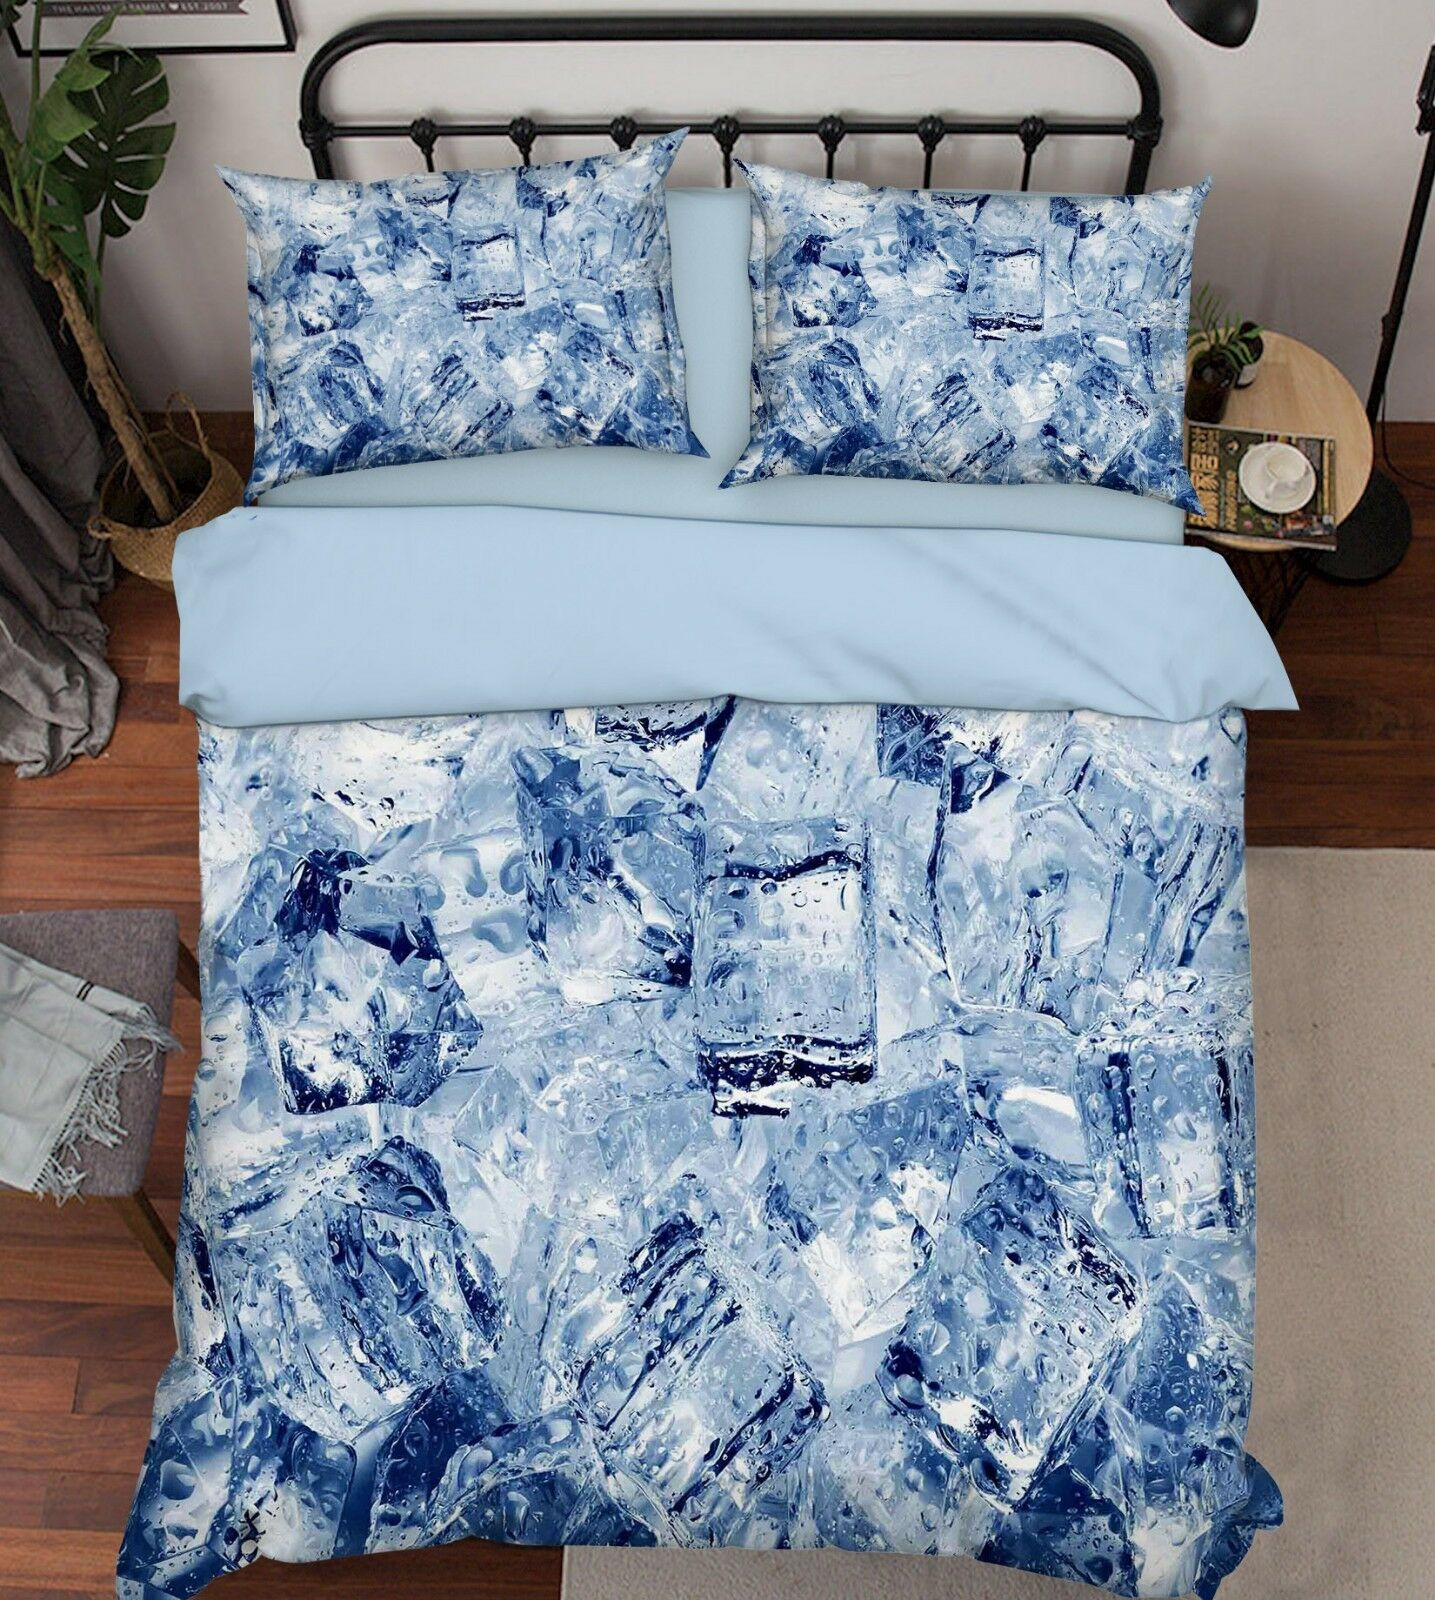 3D Ice Pattern 575 Bed Pillowcases Quilt Duvet Cover Set Single Queen AU Carly